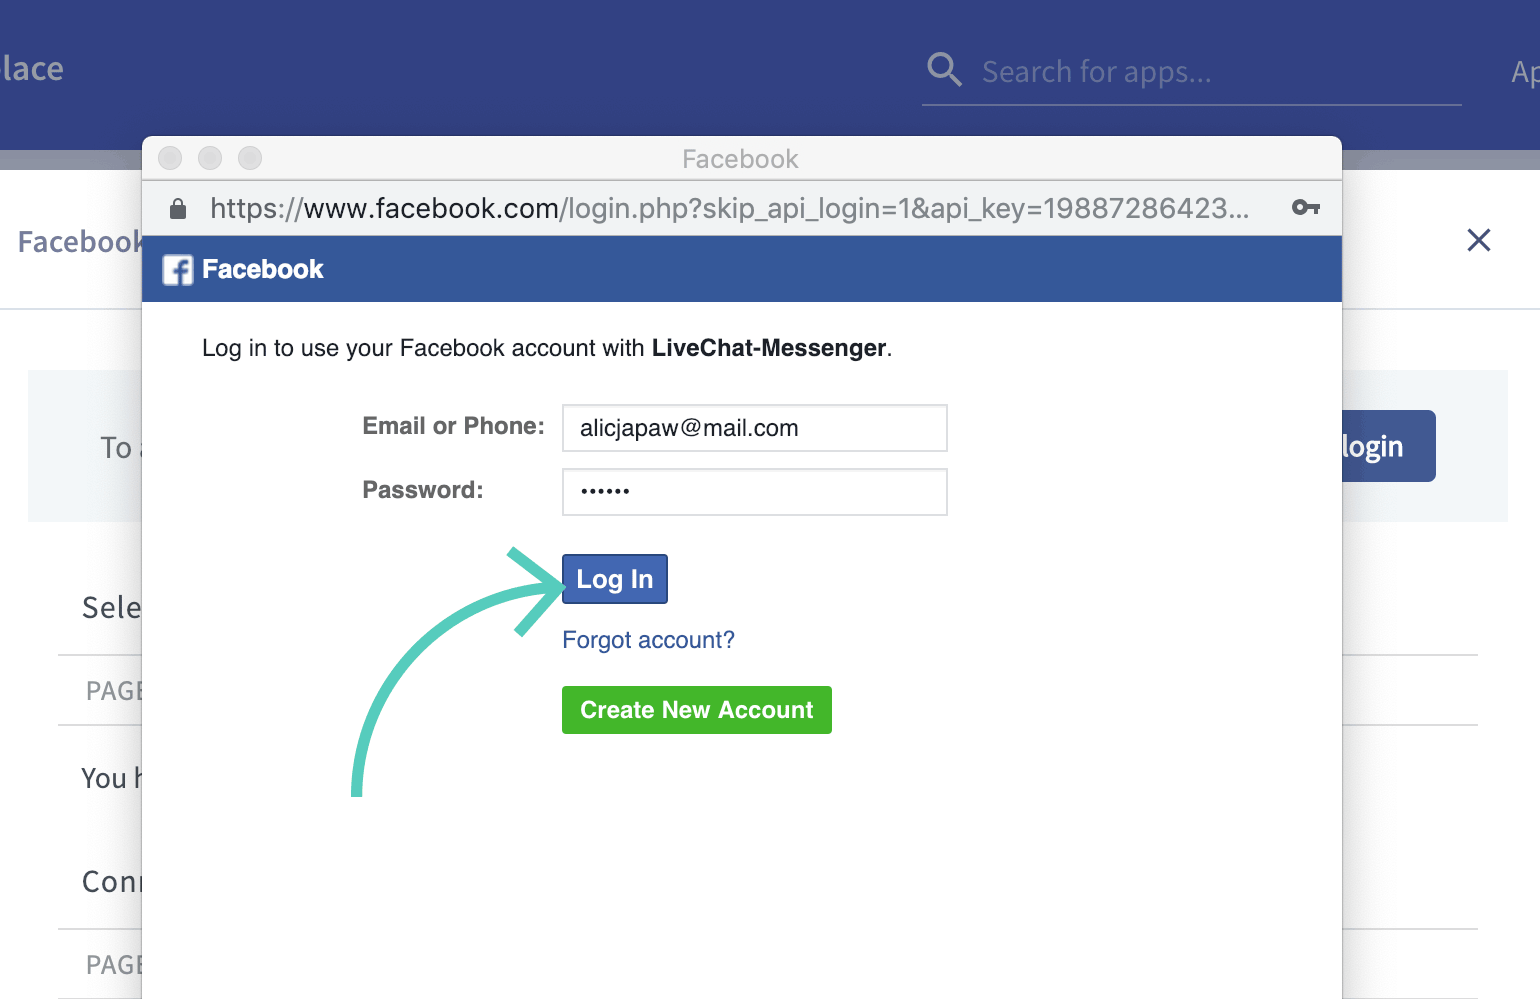 Log in with your Facebook credentials